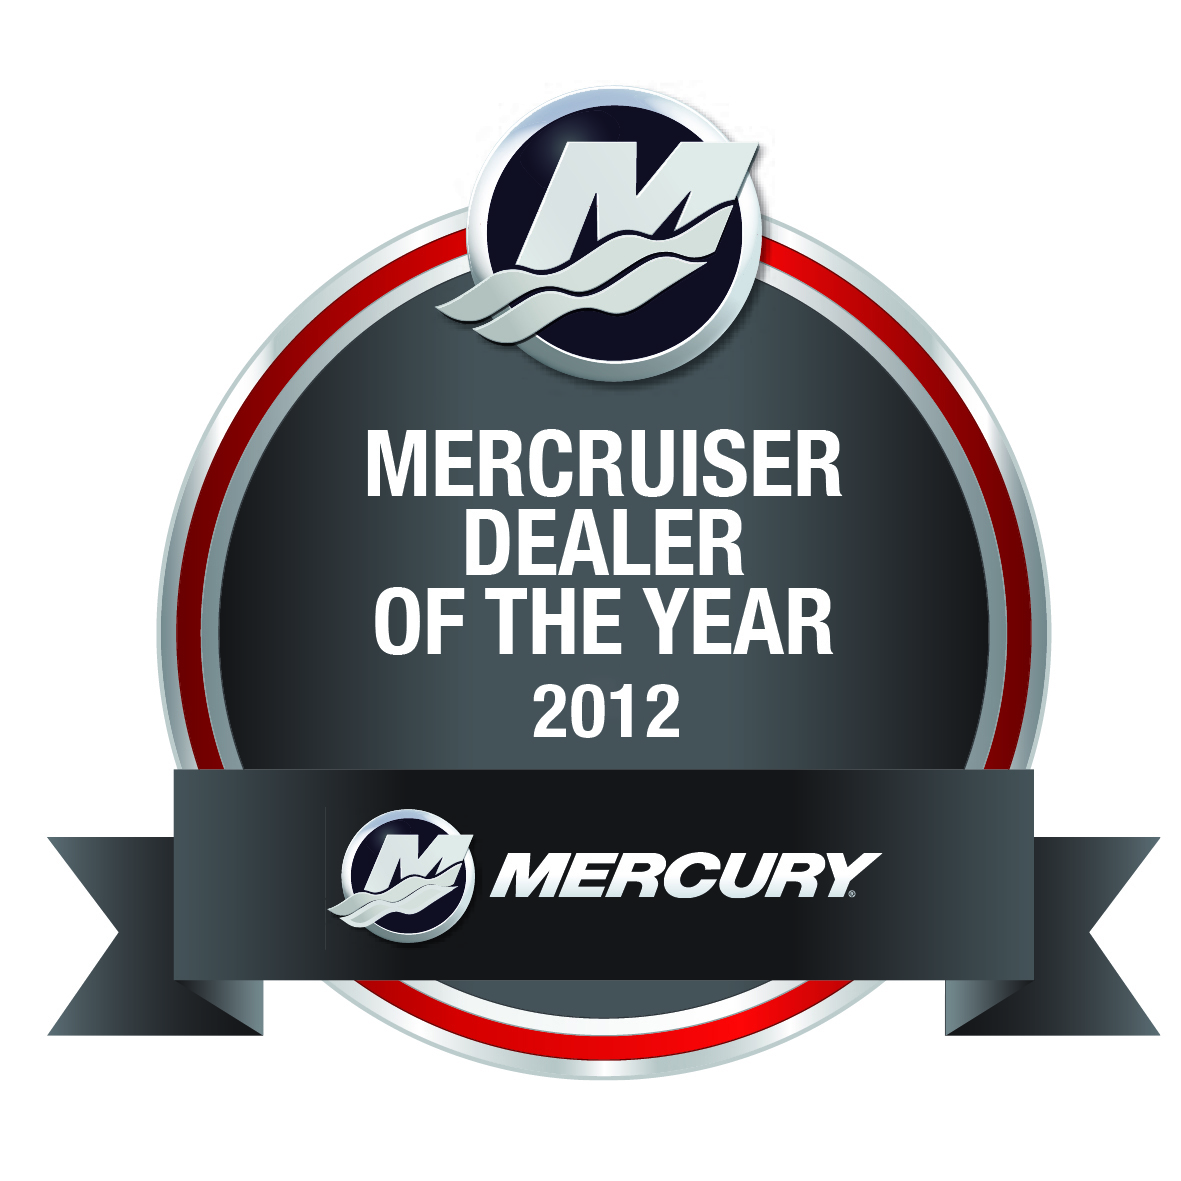 Mercruiser Dealer of the Year Hitech Marine 2012